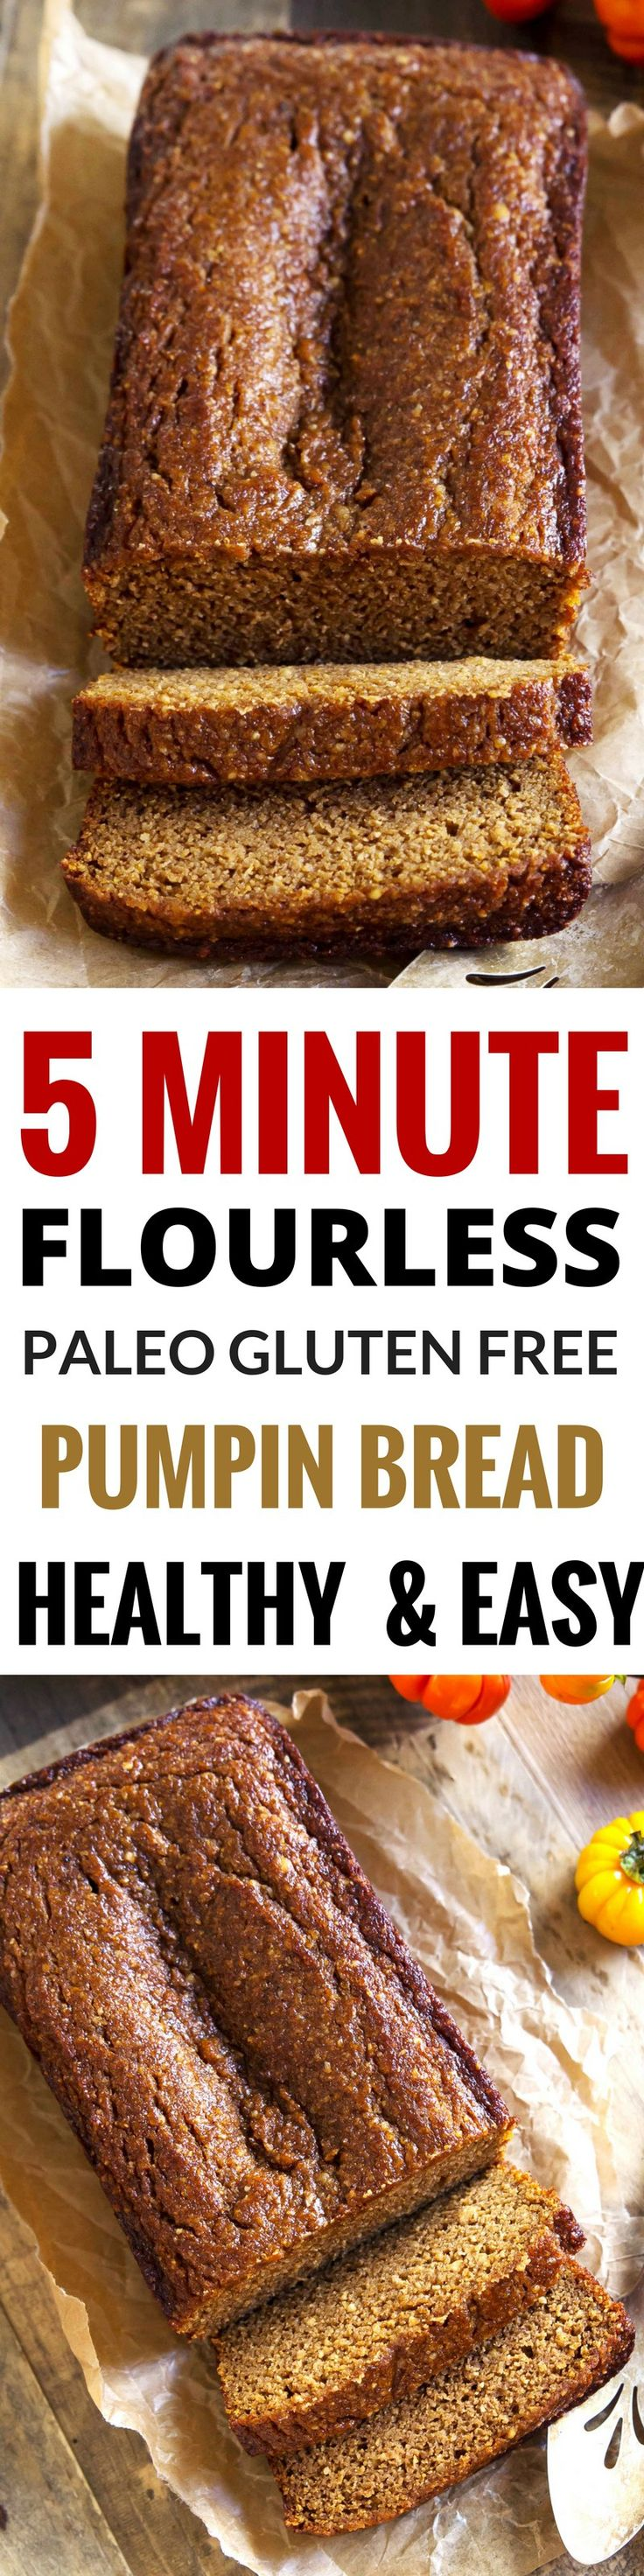 Best Paleo Pumpkin bread great for breakfast! Easy, healthy pumpkin bread recipe. Gluten free, grain free, dairy free paleo pumpkin bread. Easy Gluten Free breakfast food. Healthy baking.